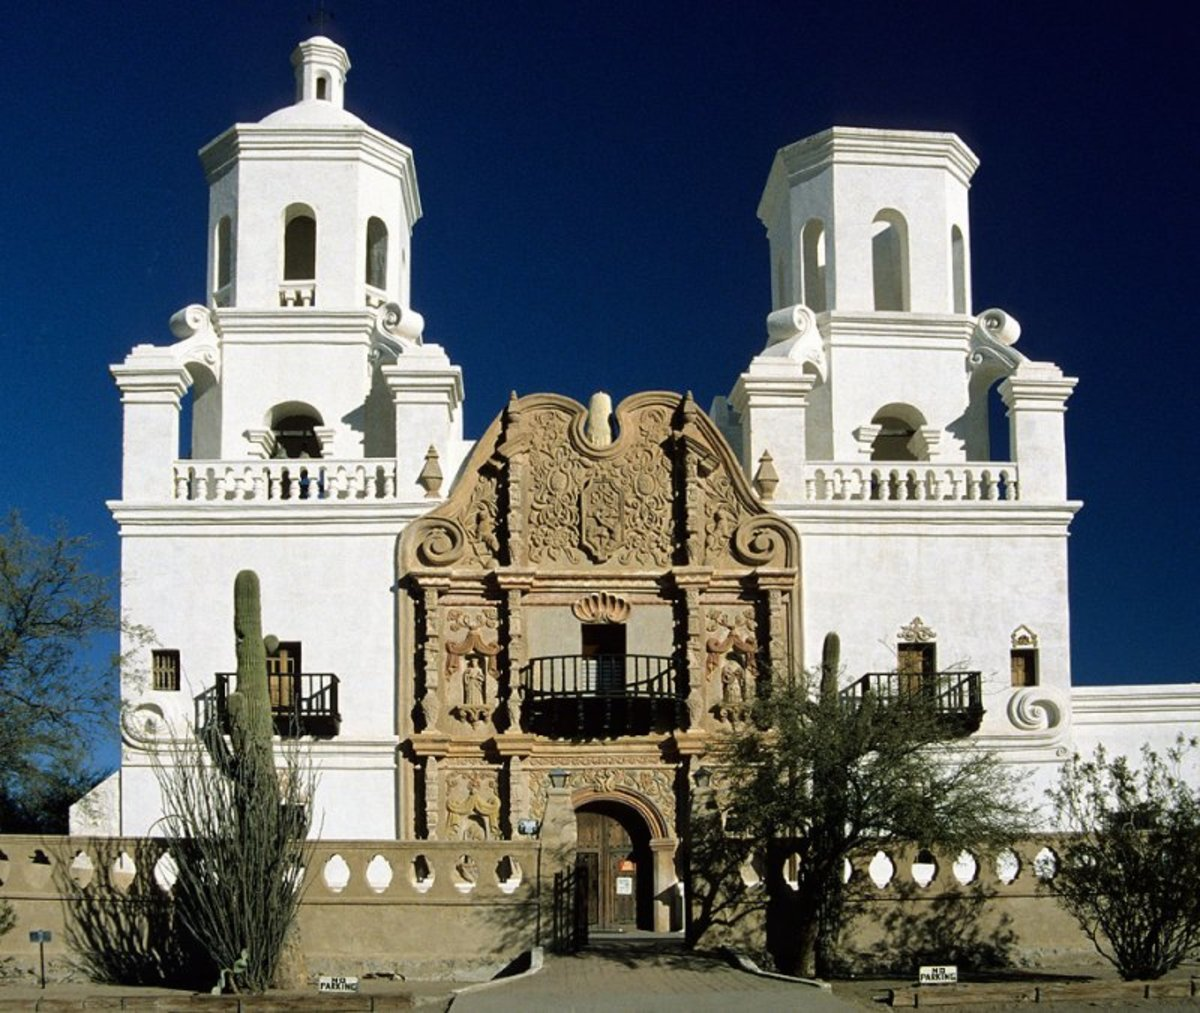 Founded by Father Eusebio Francisco Kino,         Mission San Xavier is also known as the White Dove of the Desert